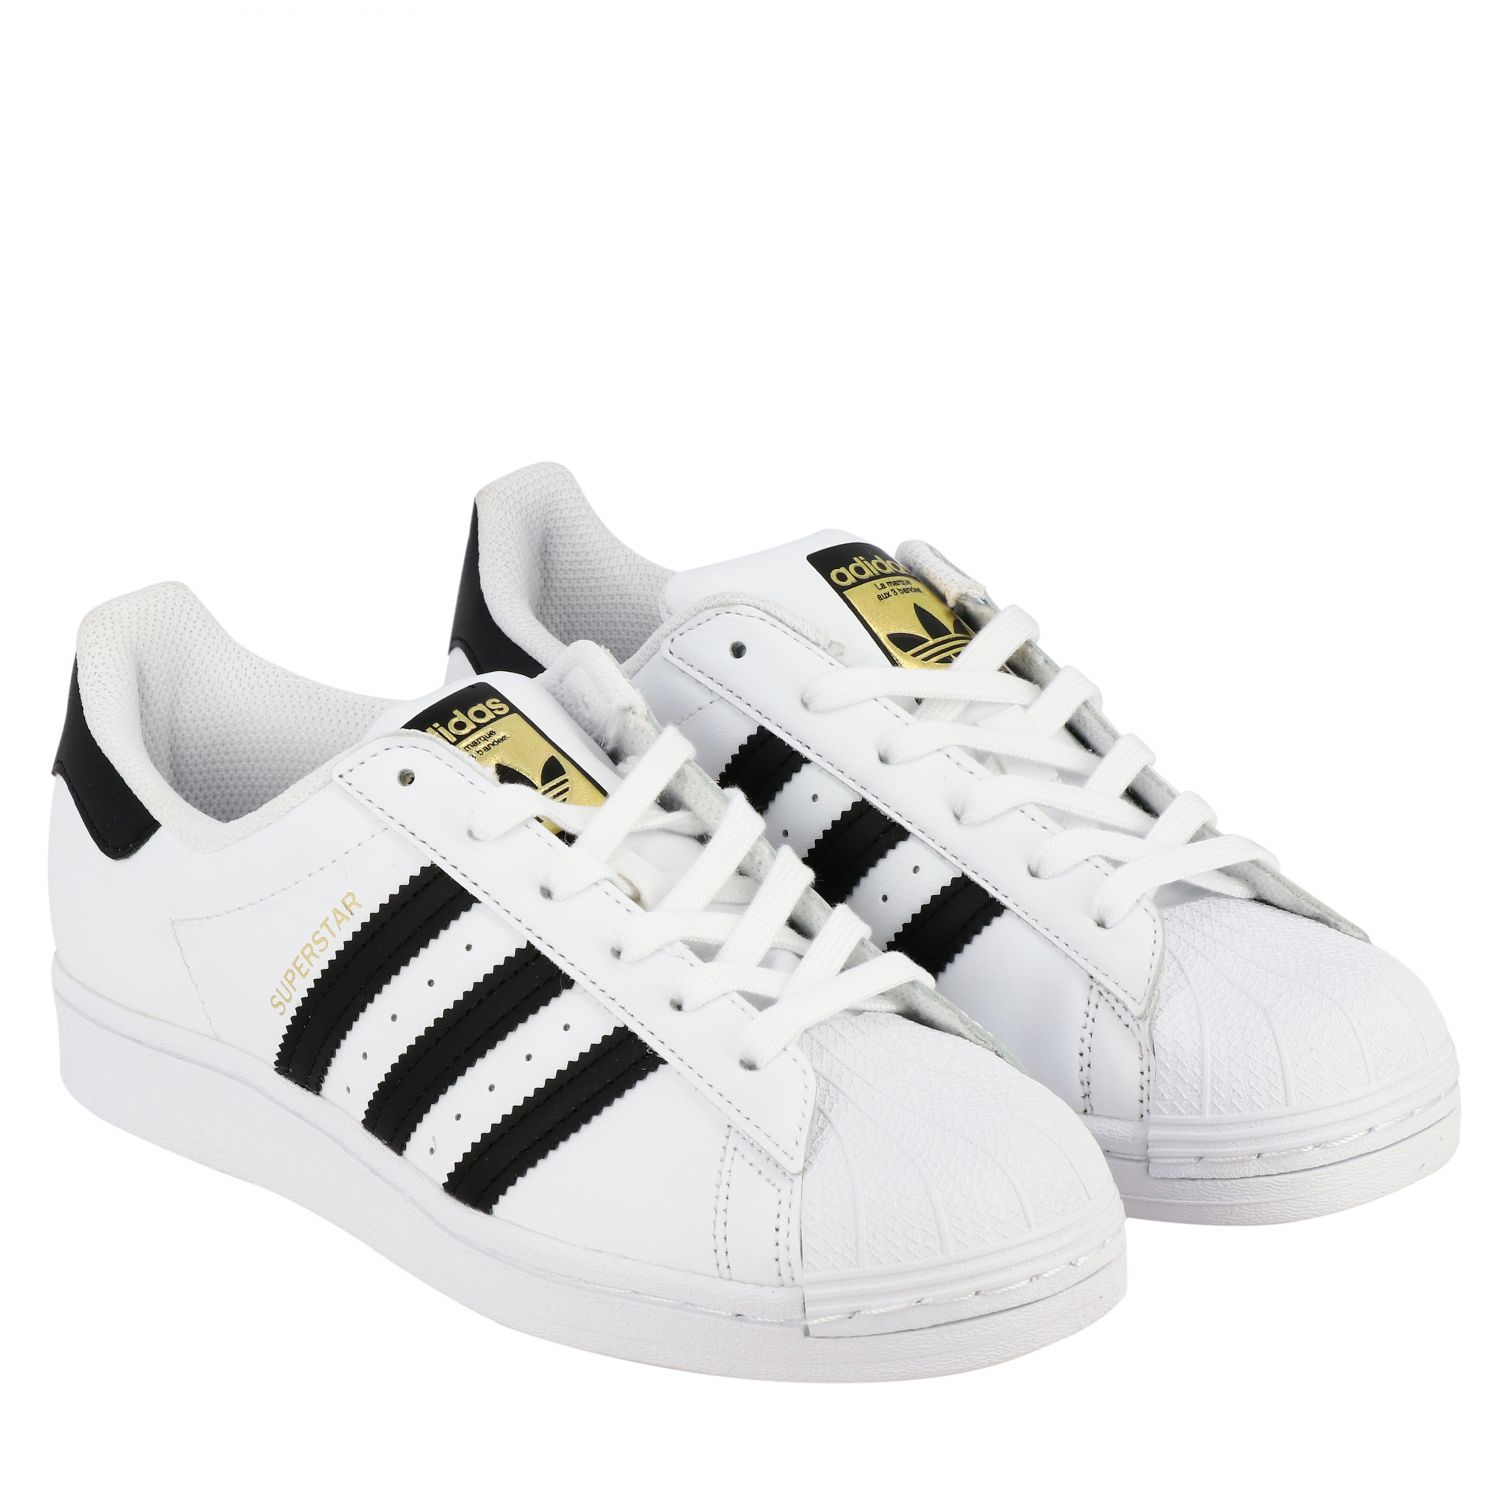 Escudriñar Imperio Inca zapatilla  Superstar J Adidas Originals leather sneakers | Shoes Adidas Originals Kids  White | Shoes Adidas Originals FU7712 Giglio EN